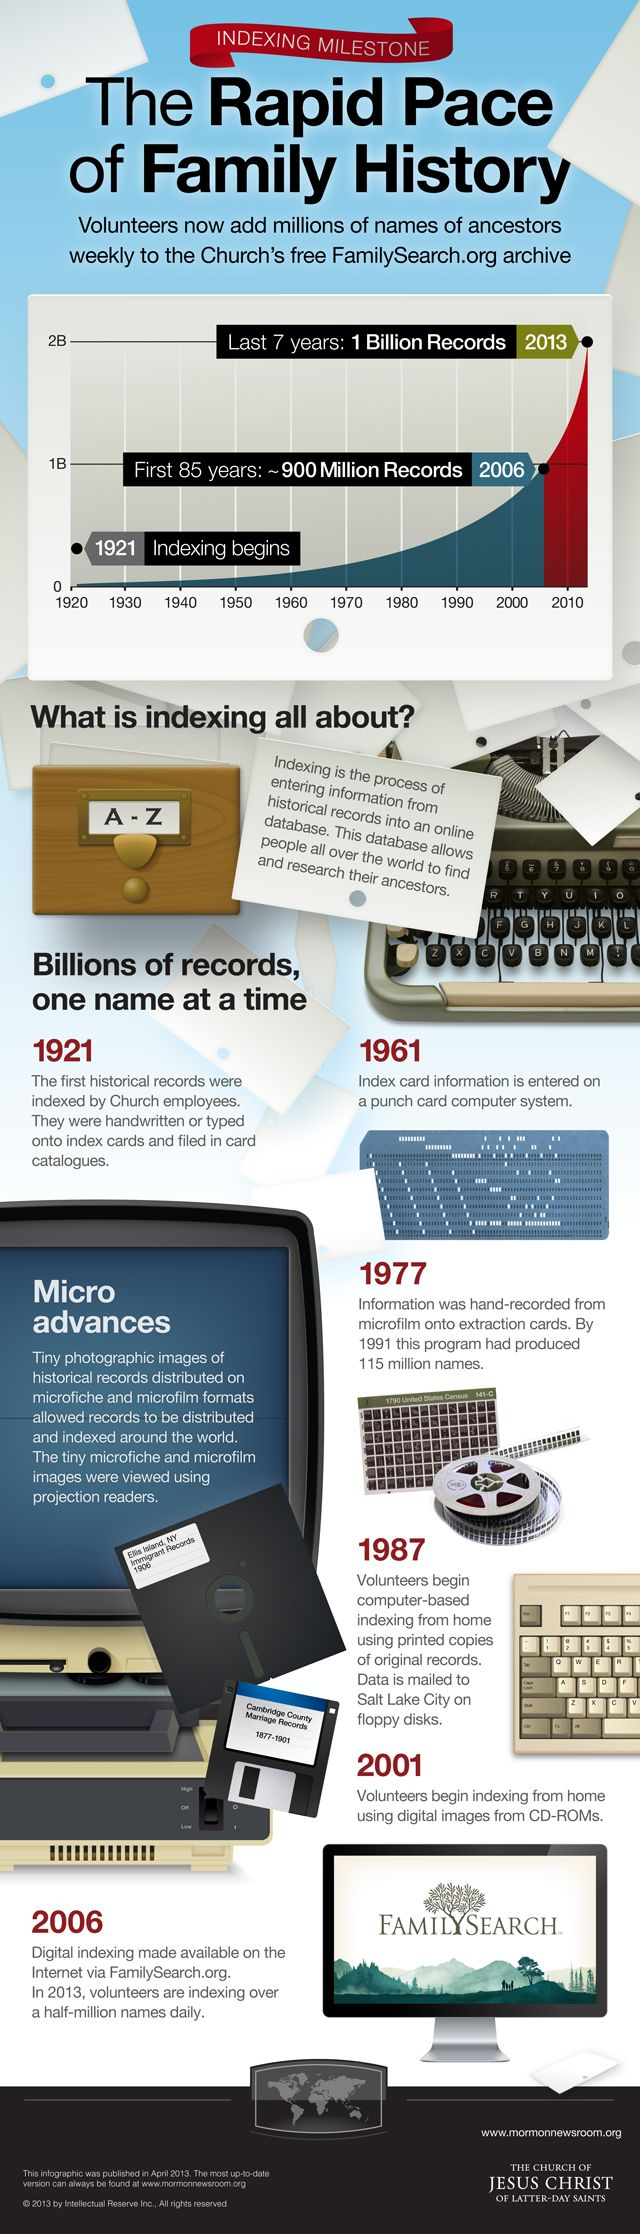 #Mormon Newsroom infographic on the rapid pace of family history work #lds #familyhistory